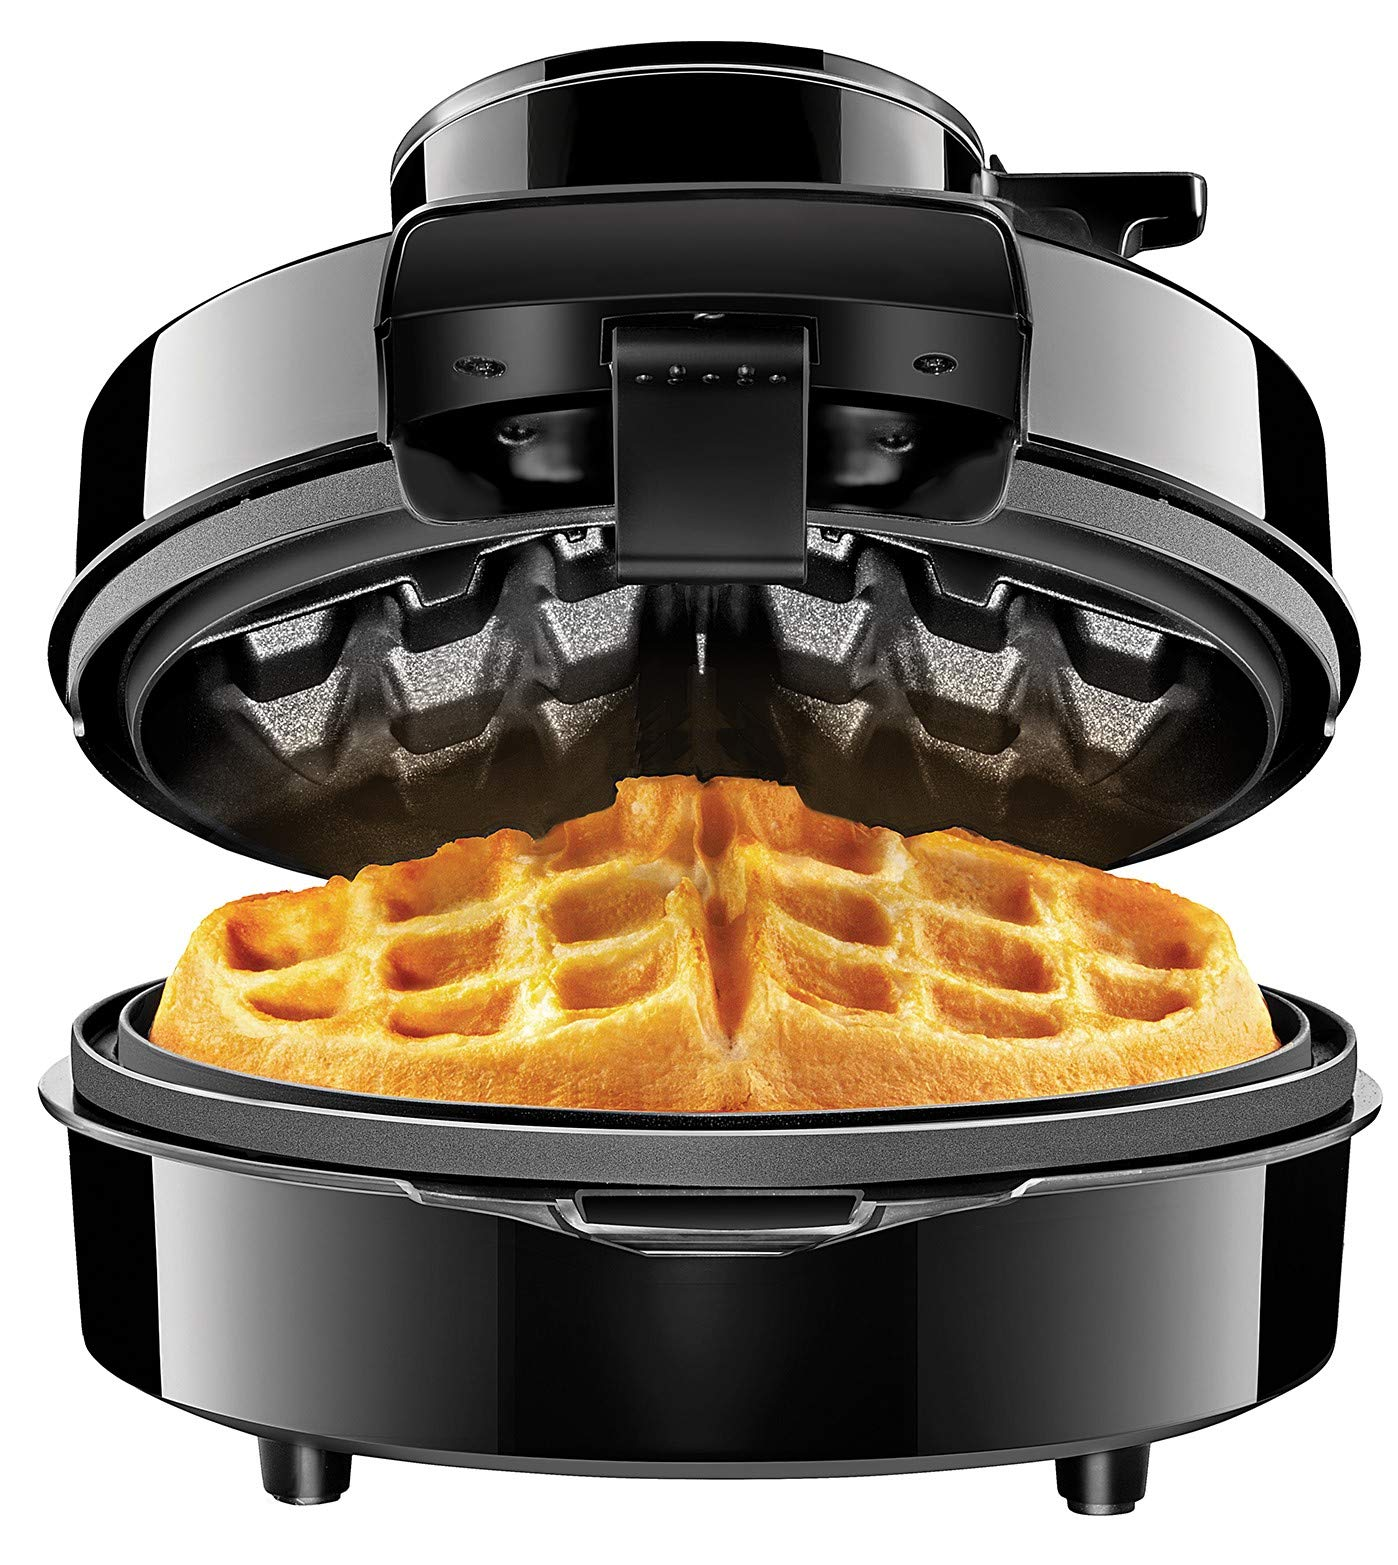 Chefman Perfect Pour Volcano Belgian Maker w/No Overflow Design Round Iron for Mess-Free Waffles, Best Small Appliance Innovation Award Winner, Measuring Cup & Cleaning Tool Included